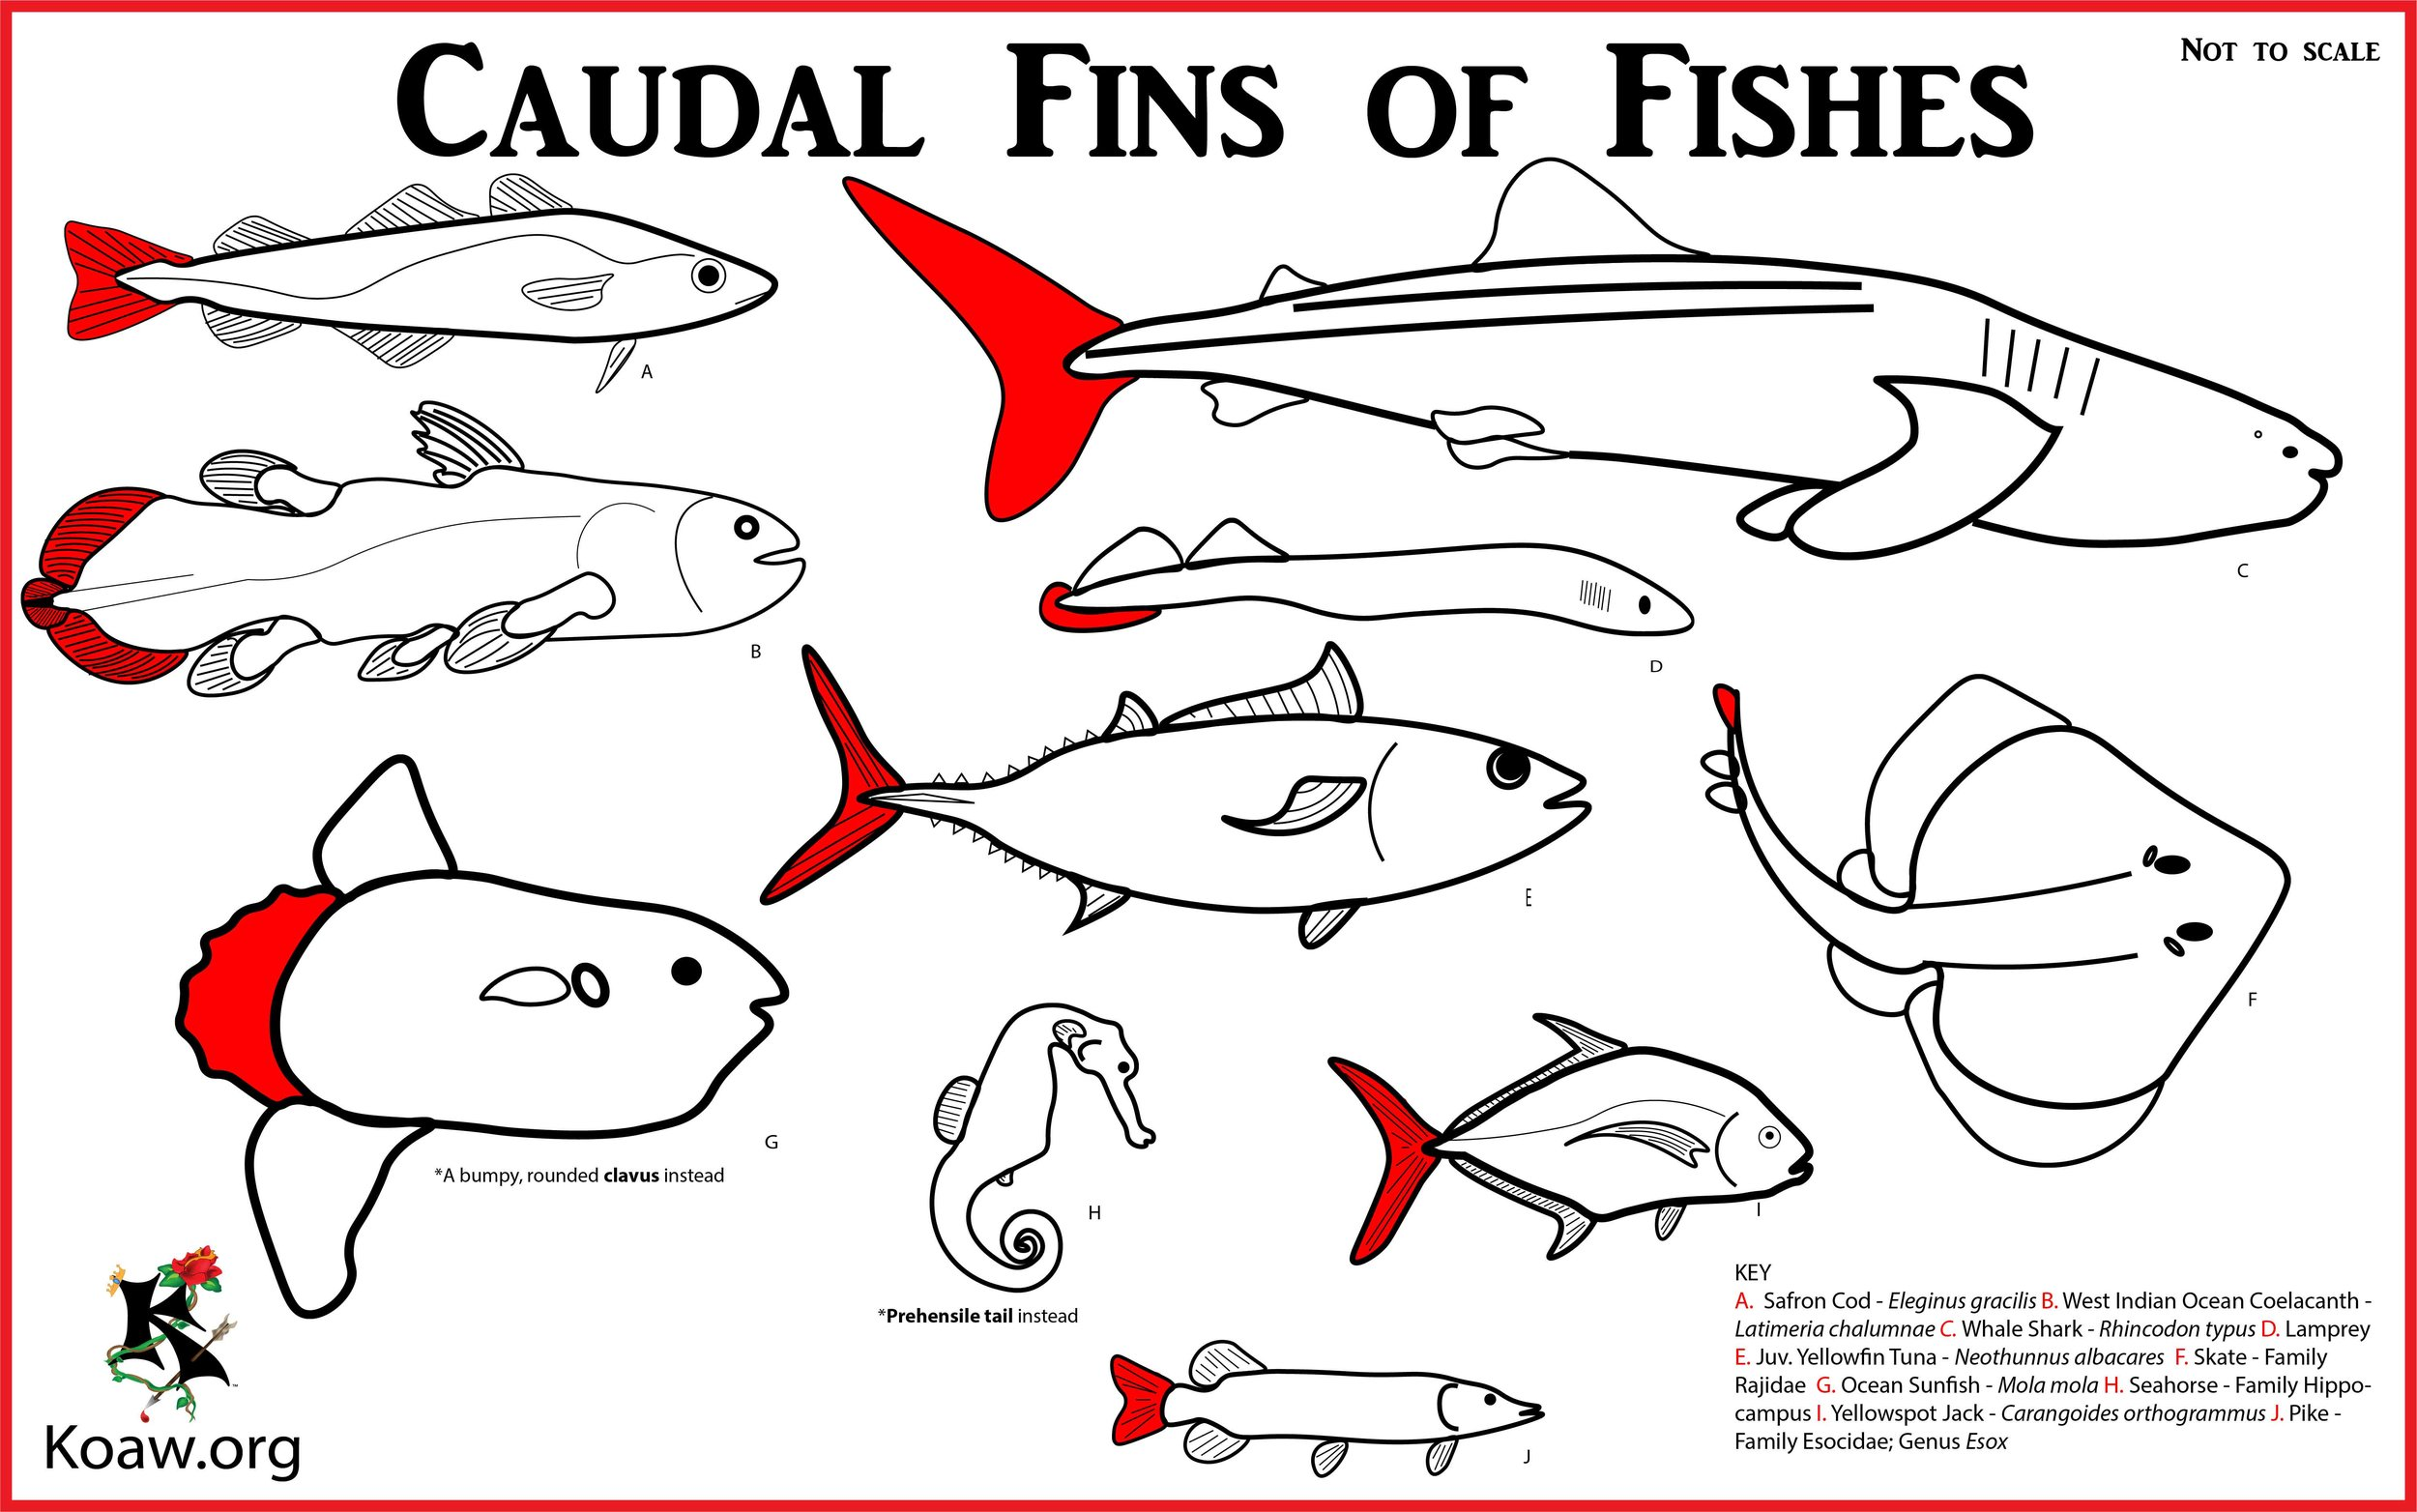 medium resolution of caudal fins of fishes tailfins illustration by koaw